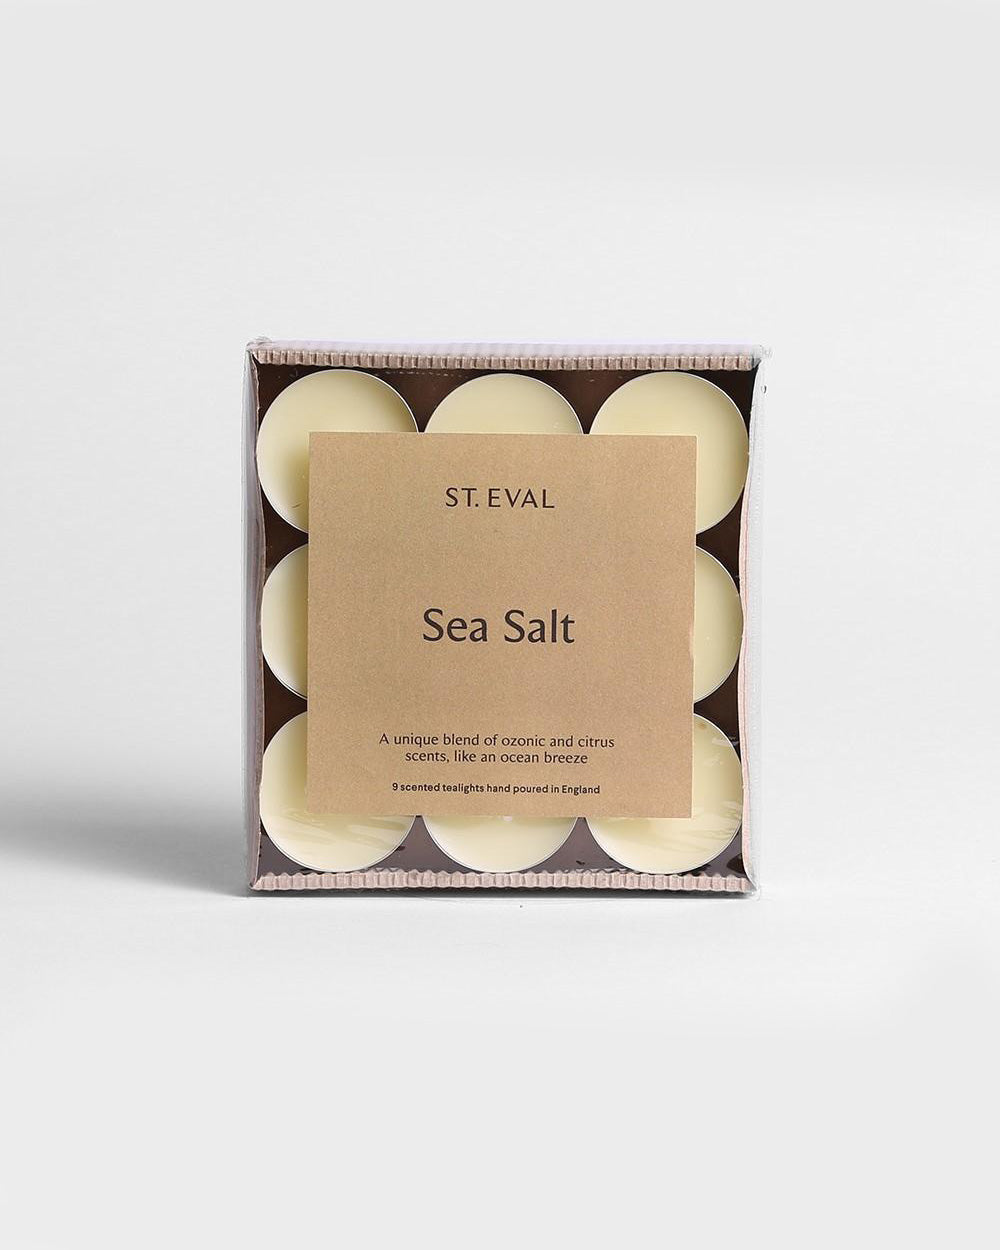 SurfGirl Beach Boutique St Eval Scented Scent Sea Salt Tealights Pack